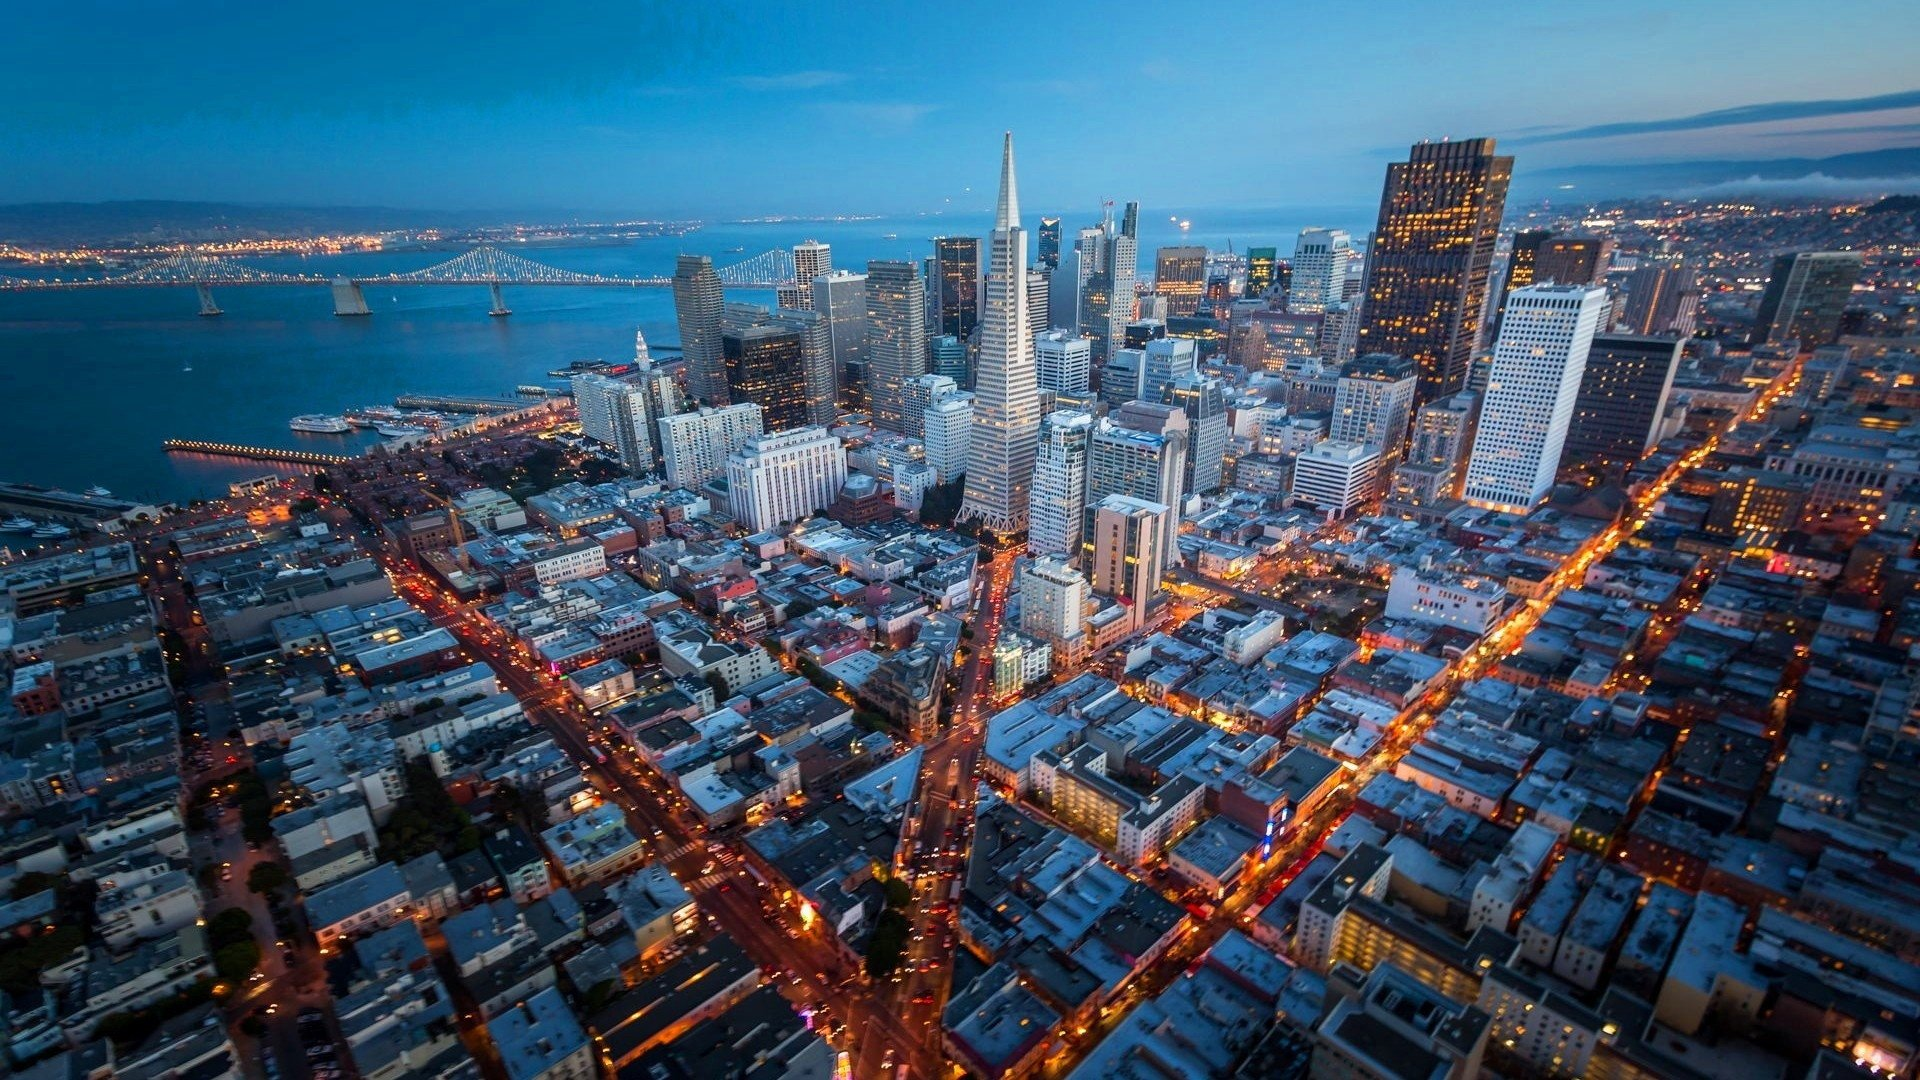 san francisco california usa metropolis wallpapers - 1920x1080 - 843914 - HD Wallpaper for PC Desktop Background